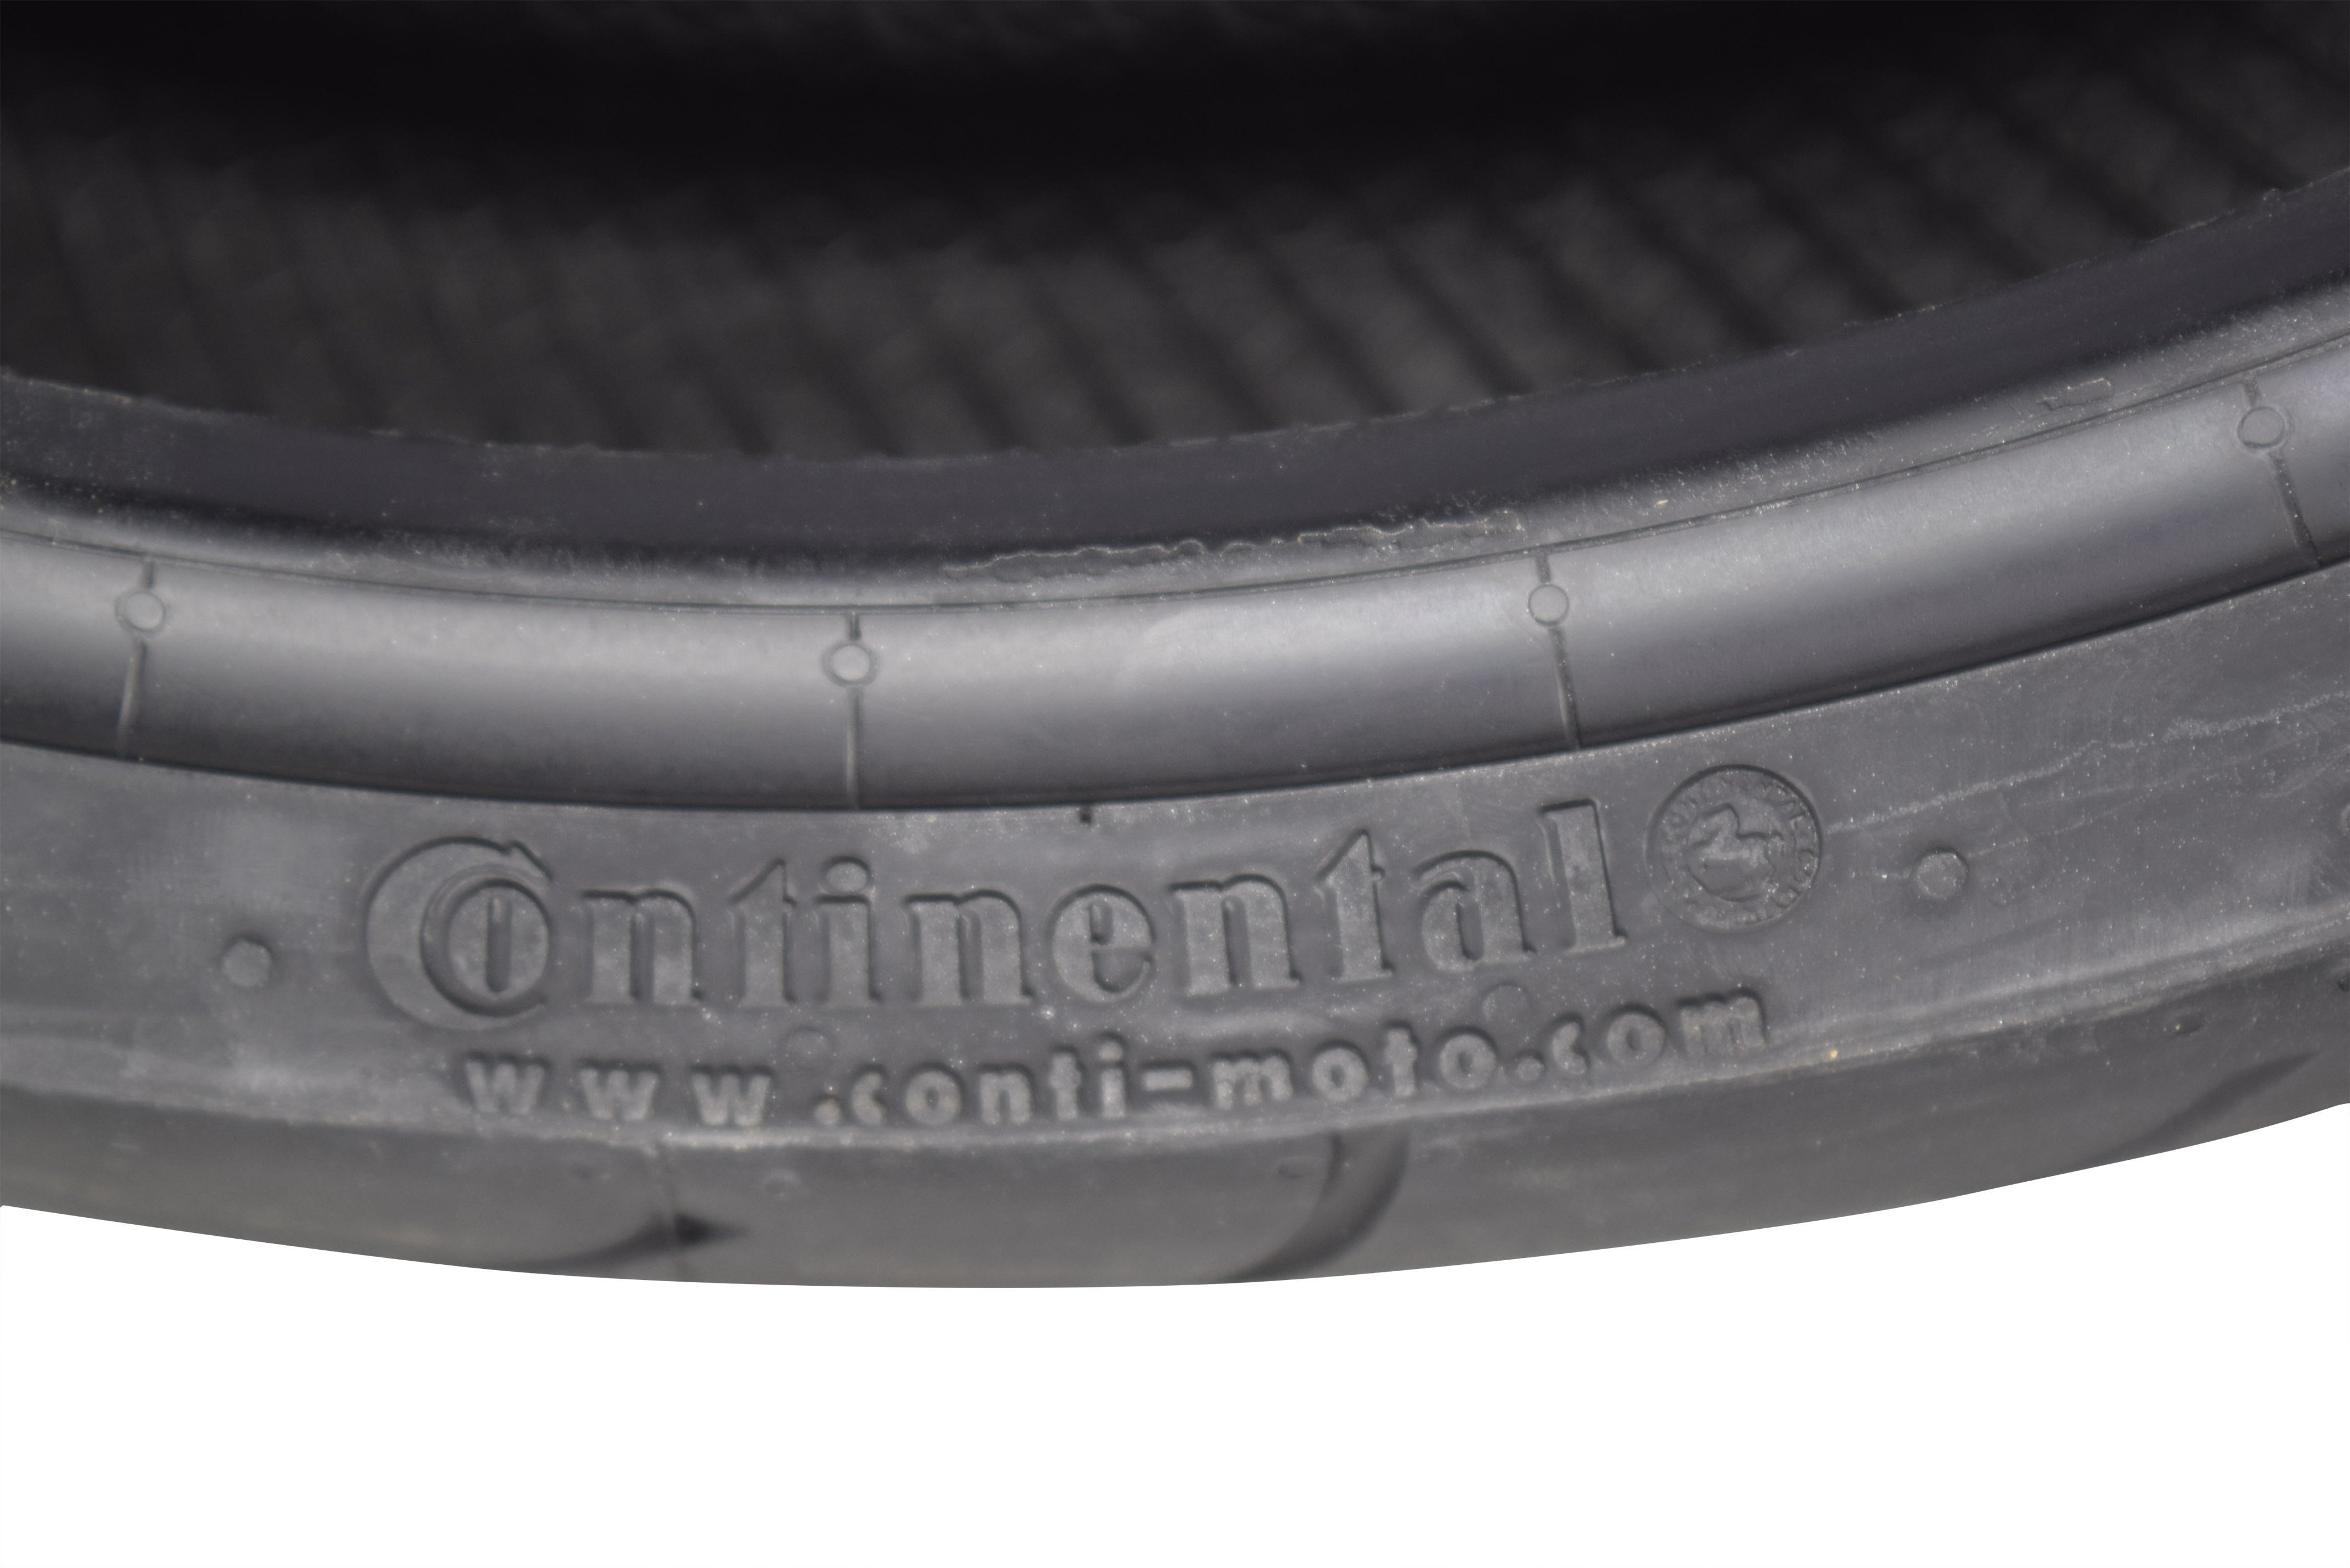 Continental-190-50-17-Motorcycle-Tire-Rear-Single-Tire-image-3